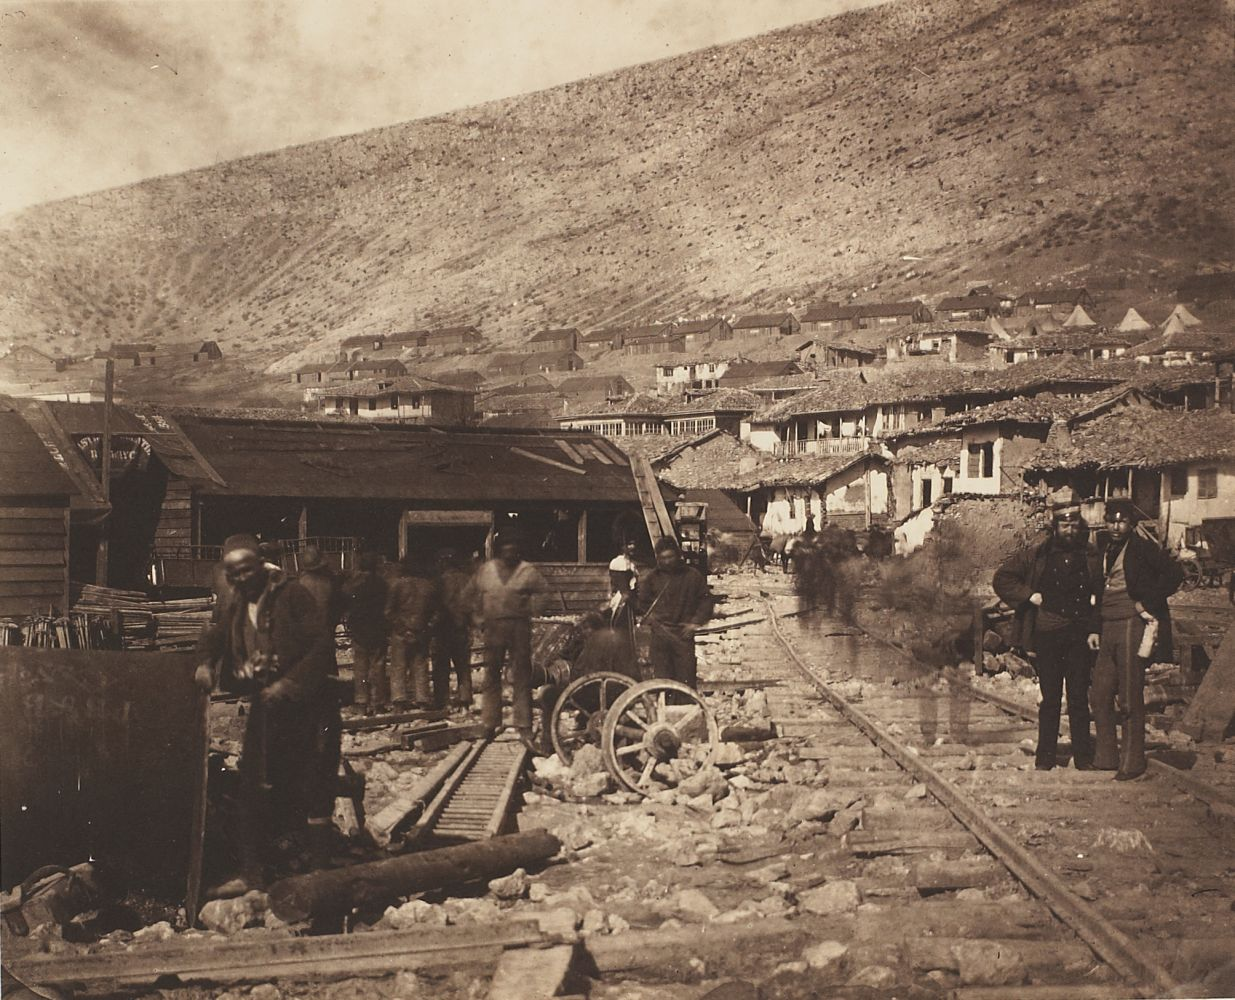 "Roger Fenton (English, 1819-1869) ""The Railway Yard, Balaklava"" in the Crimea, 1855 Salt print from a collodion negative"